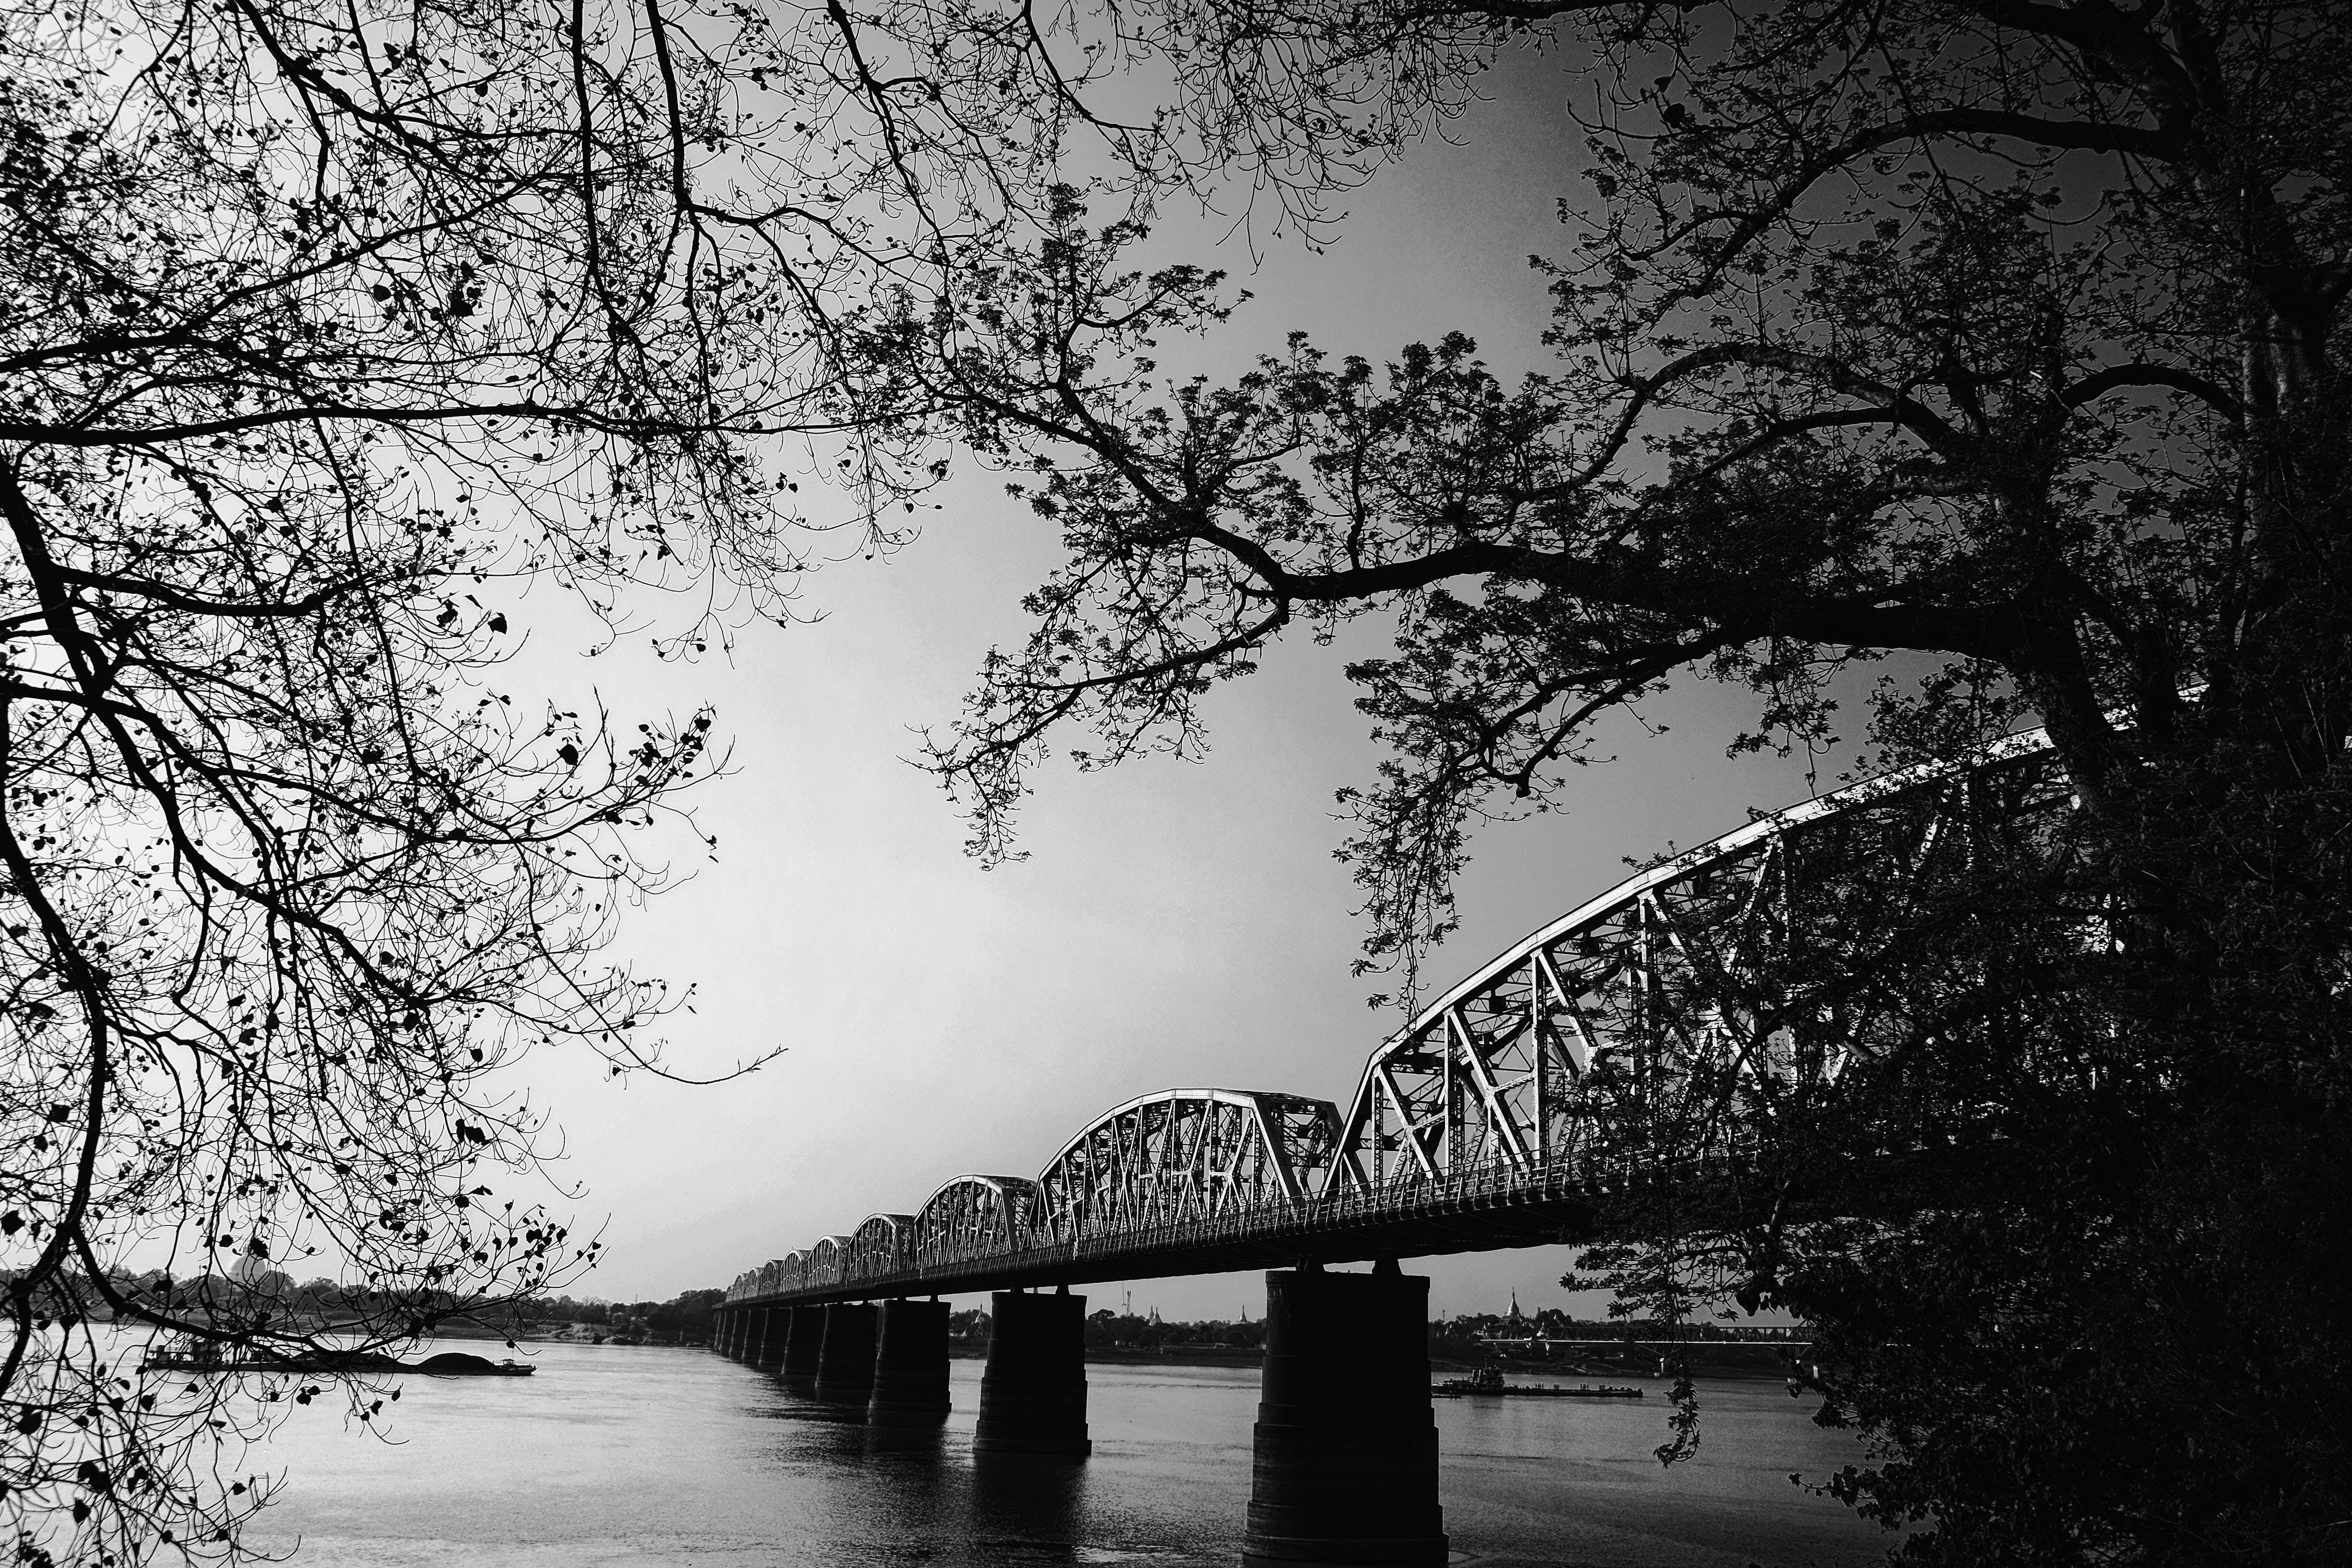 Black and Gray Scale Photo of Bridge